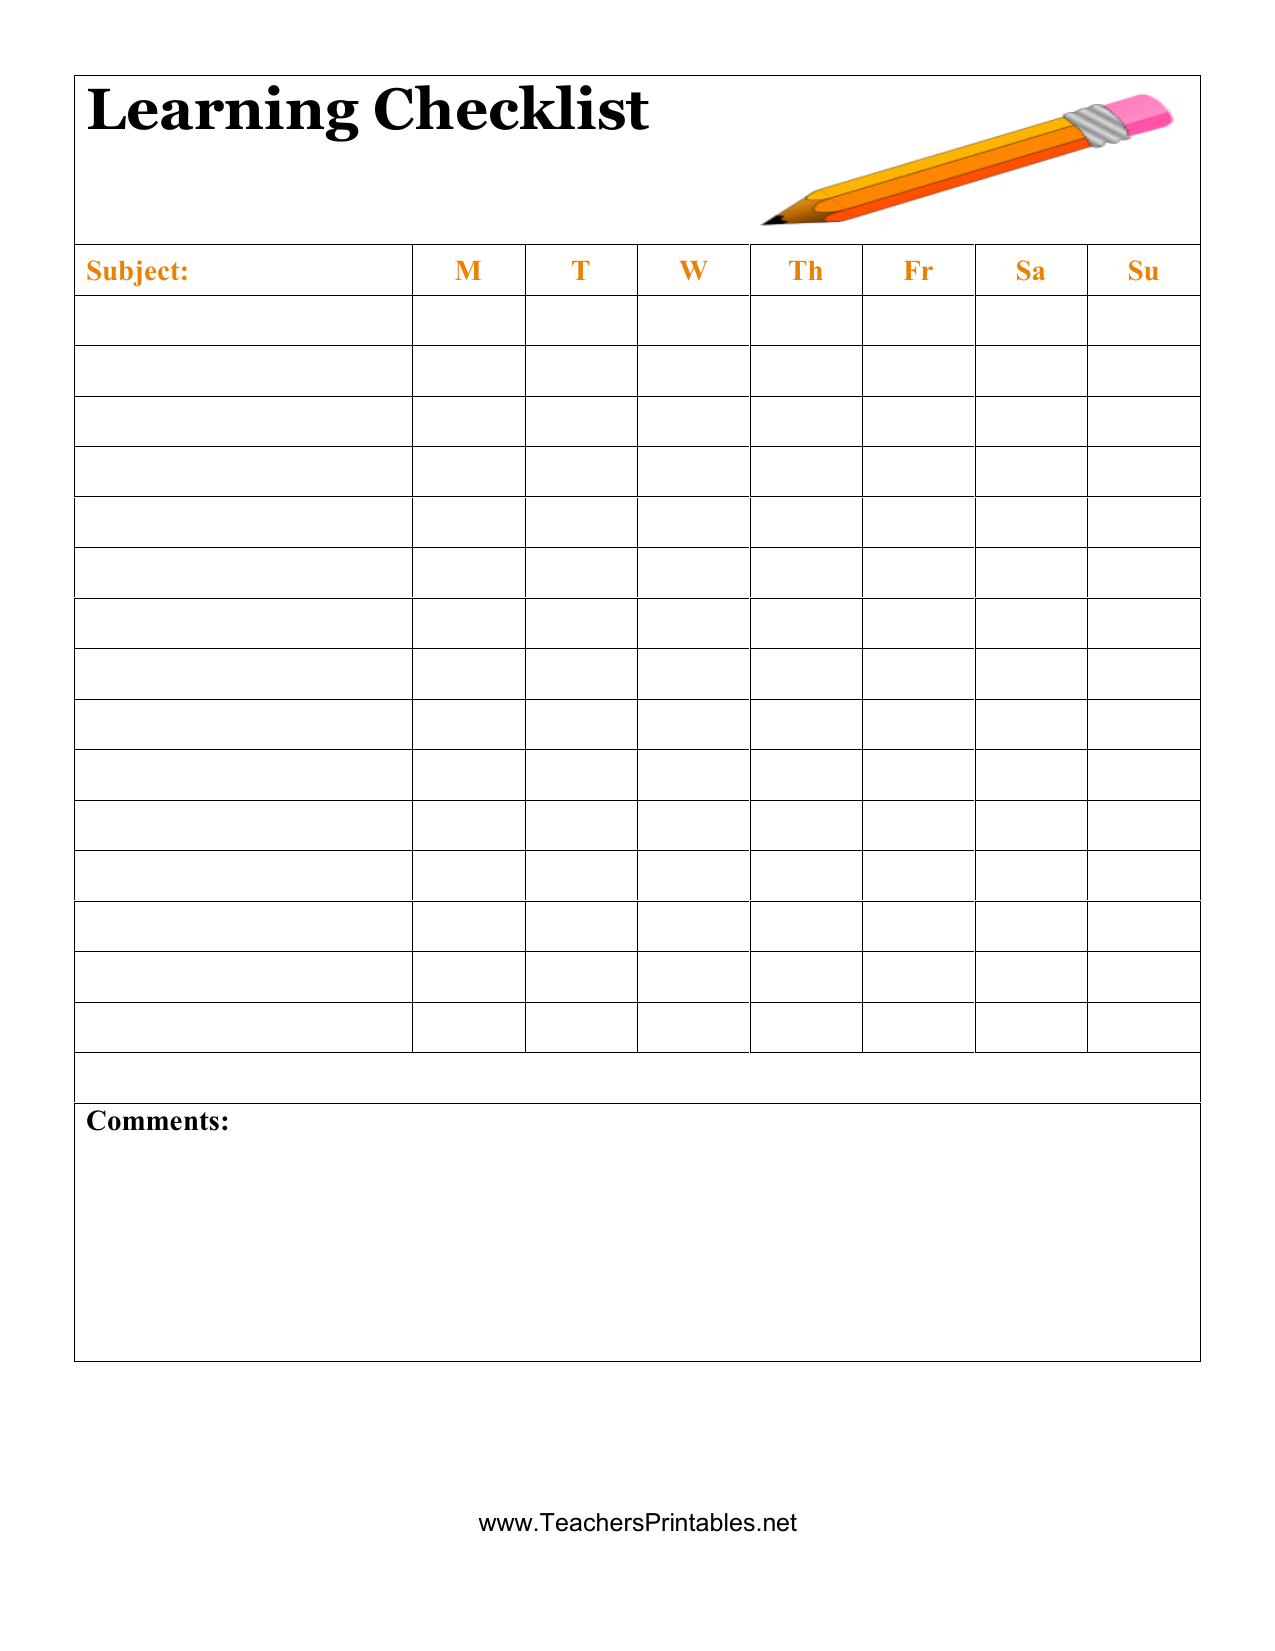 New Printable Checklist Template exceltemplate xls